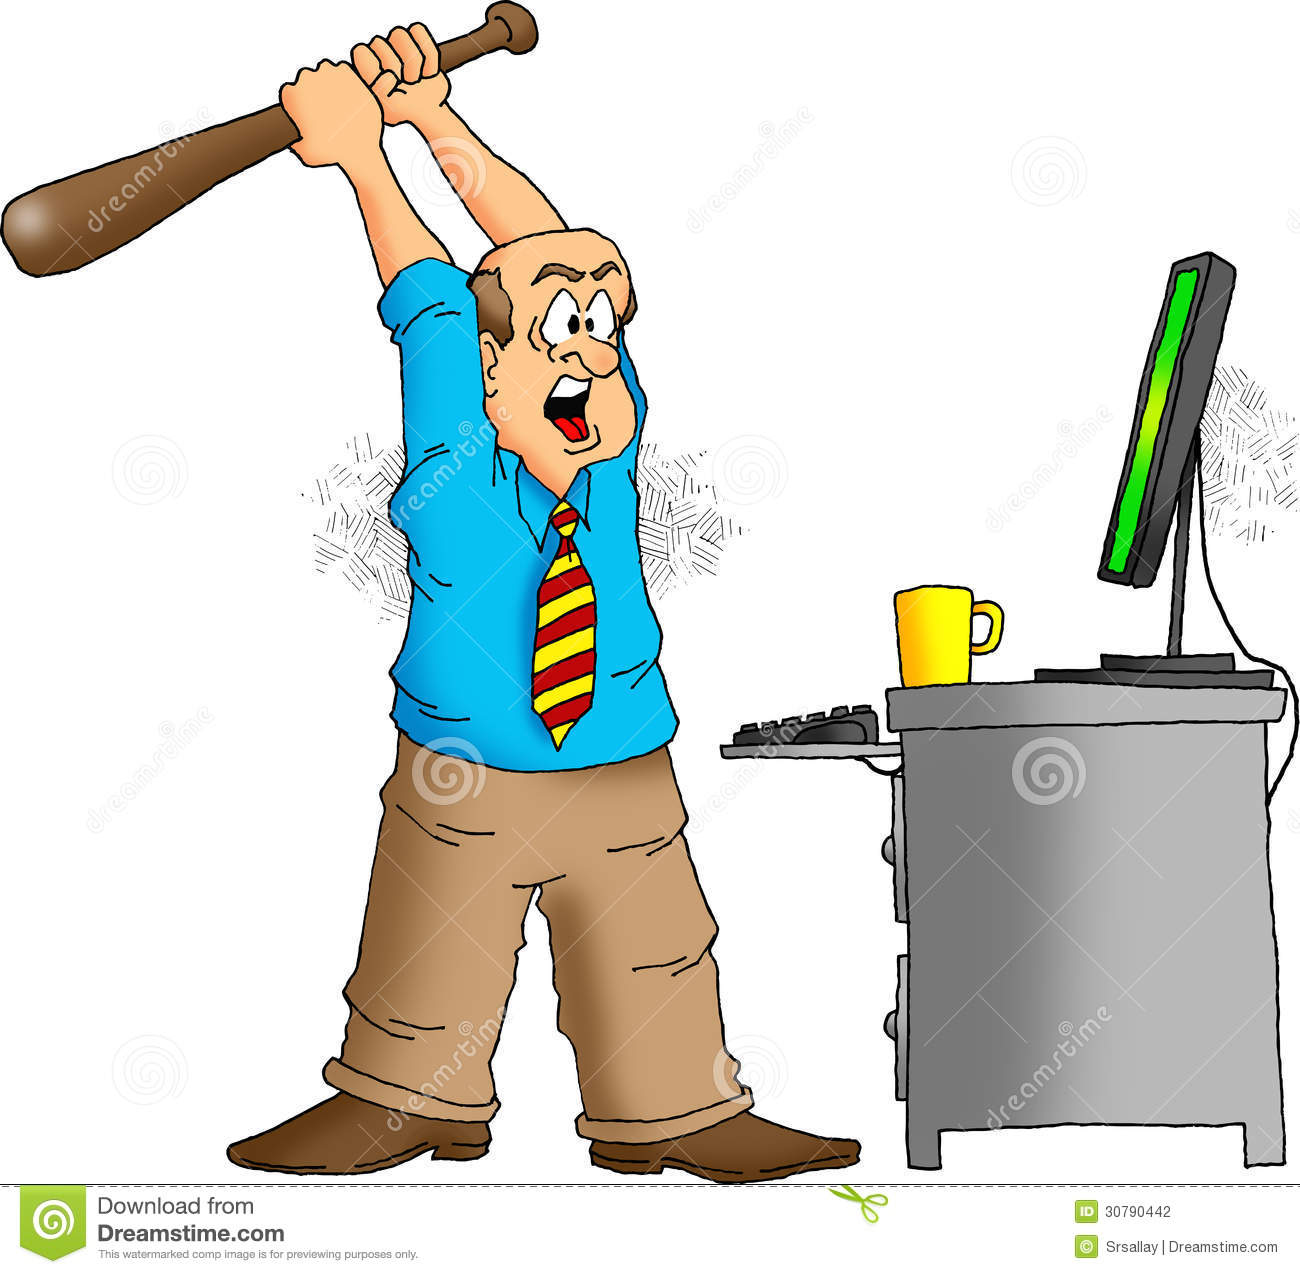 Angry Computer User About To Destroy His Computer With A Baseball Bat